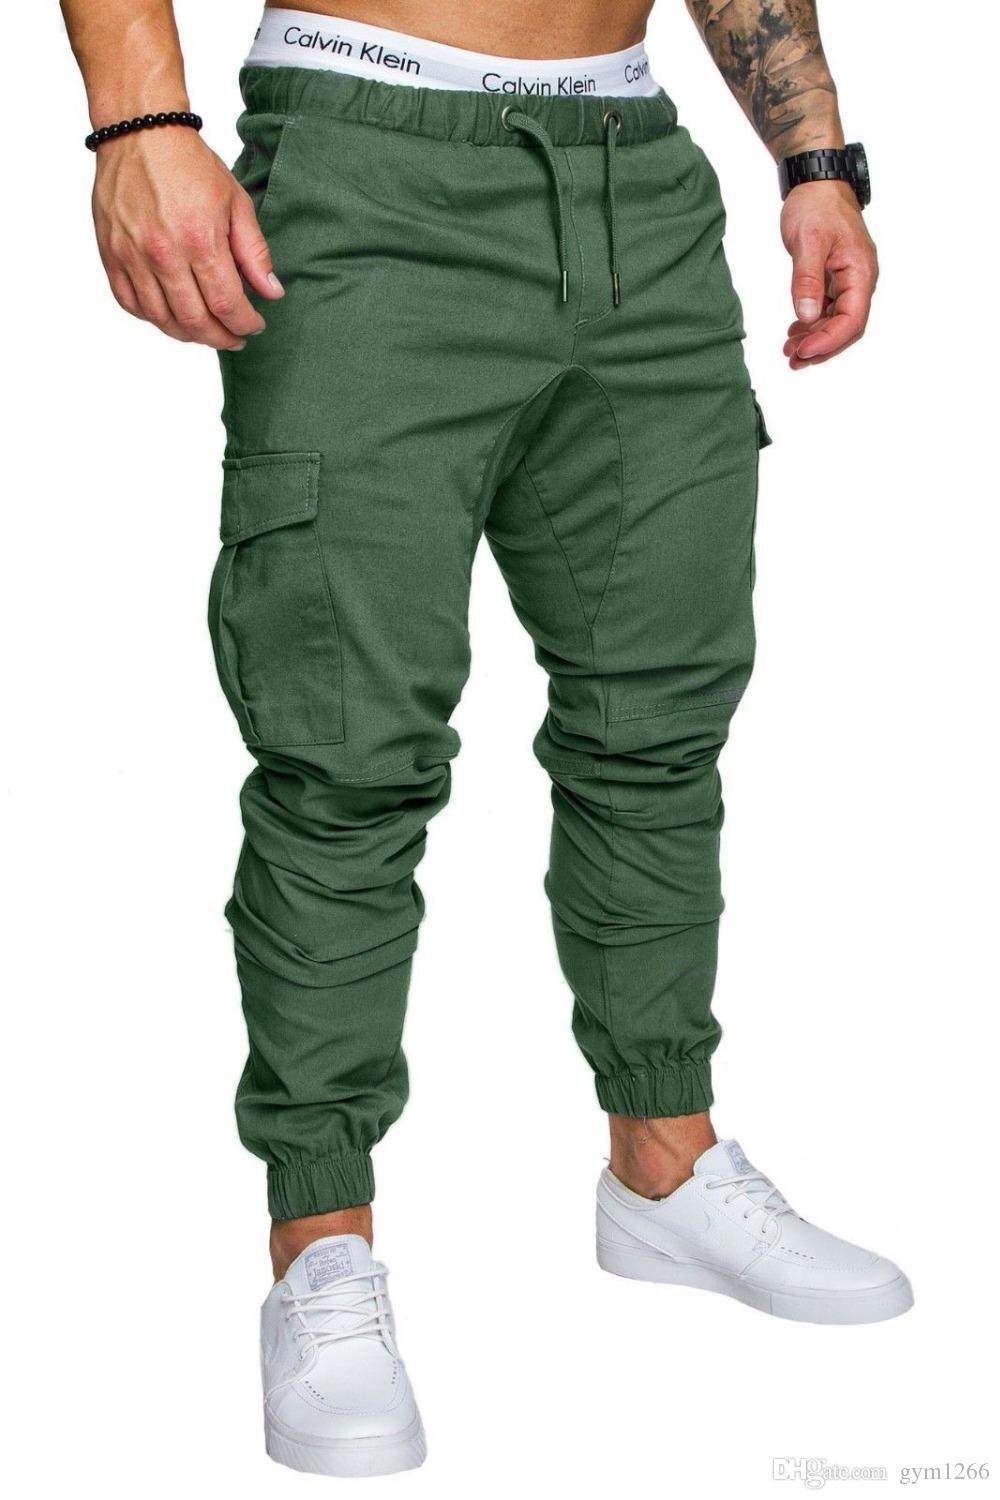 f47feff8a5 2018 New Green Colour Fear Of God Fifth Collection FOG Justin Bieber side  zipper casual sweatpants men hiphop jogger pants 6 style M-4XL